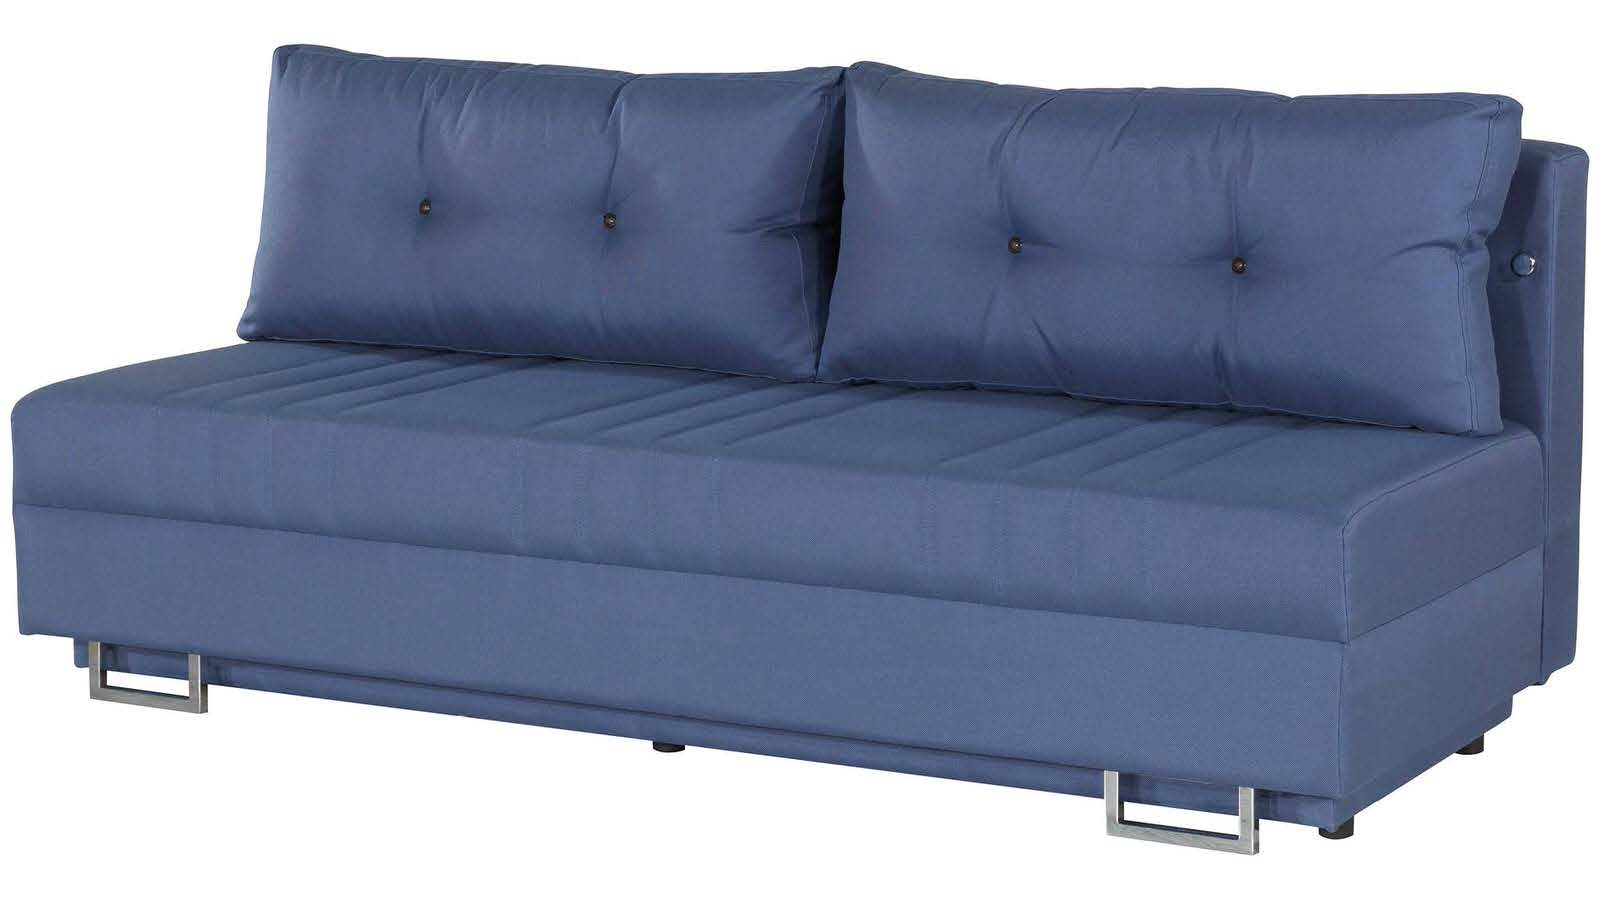 Flex motion blue queen sofa bed w storage by casamode Couches bed